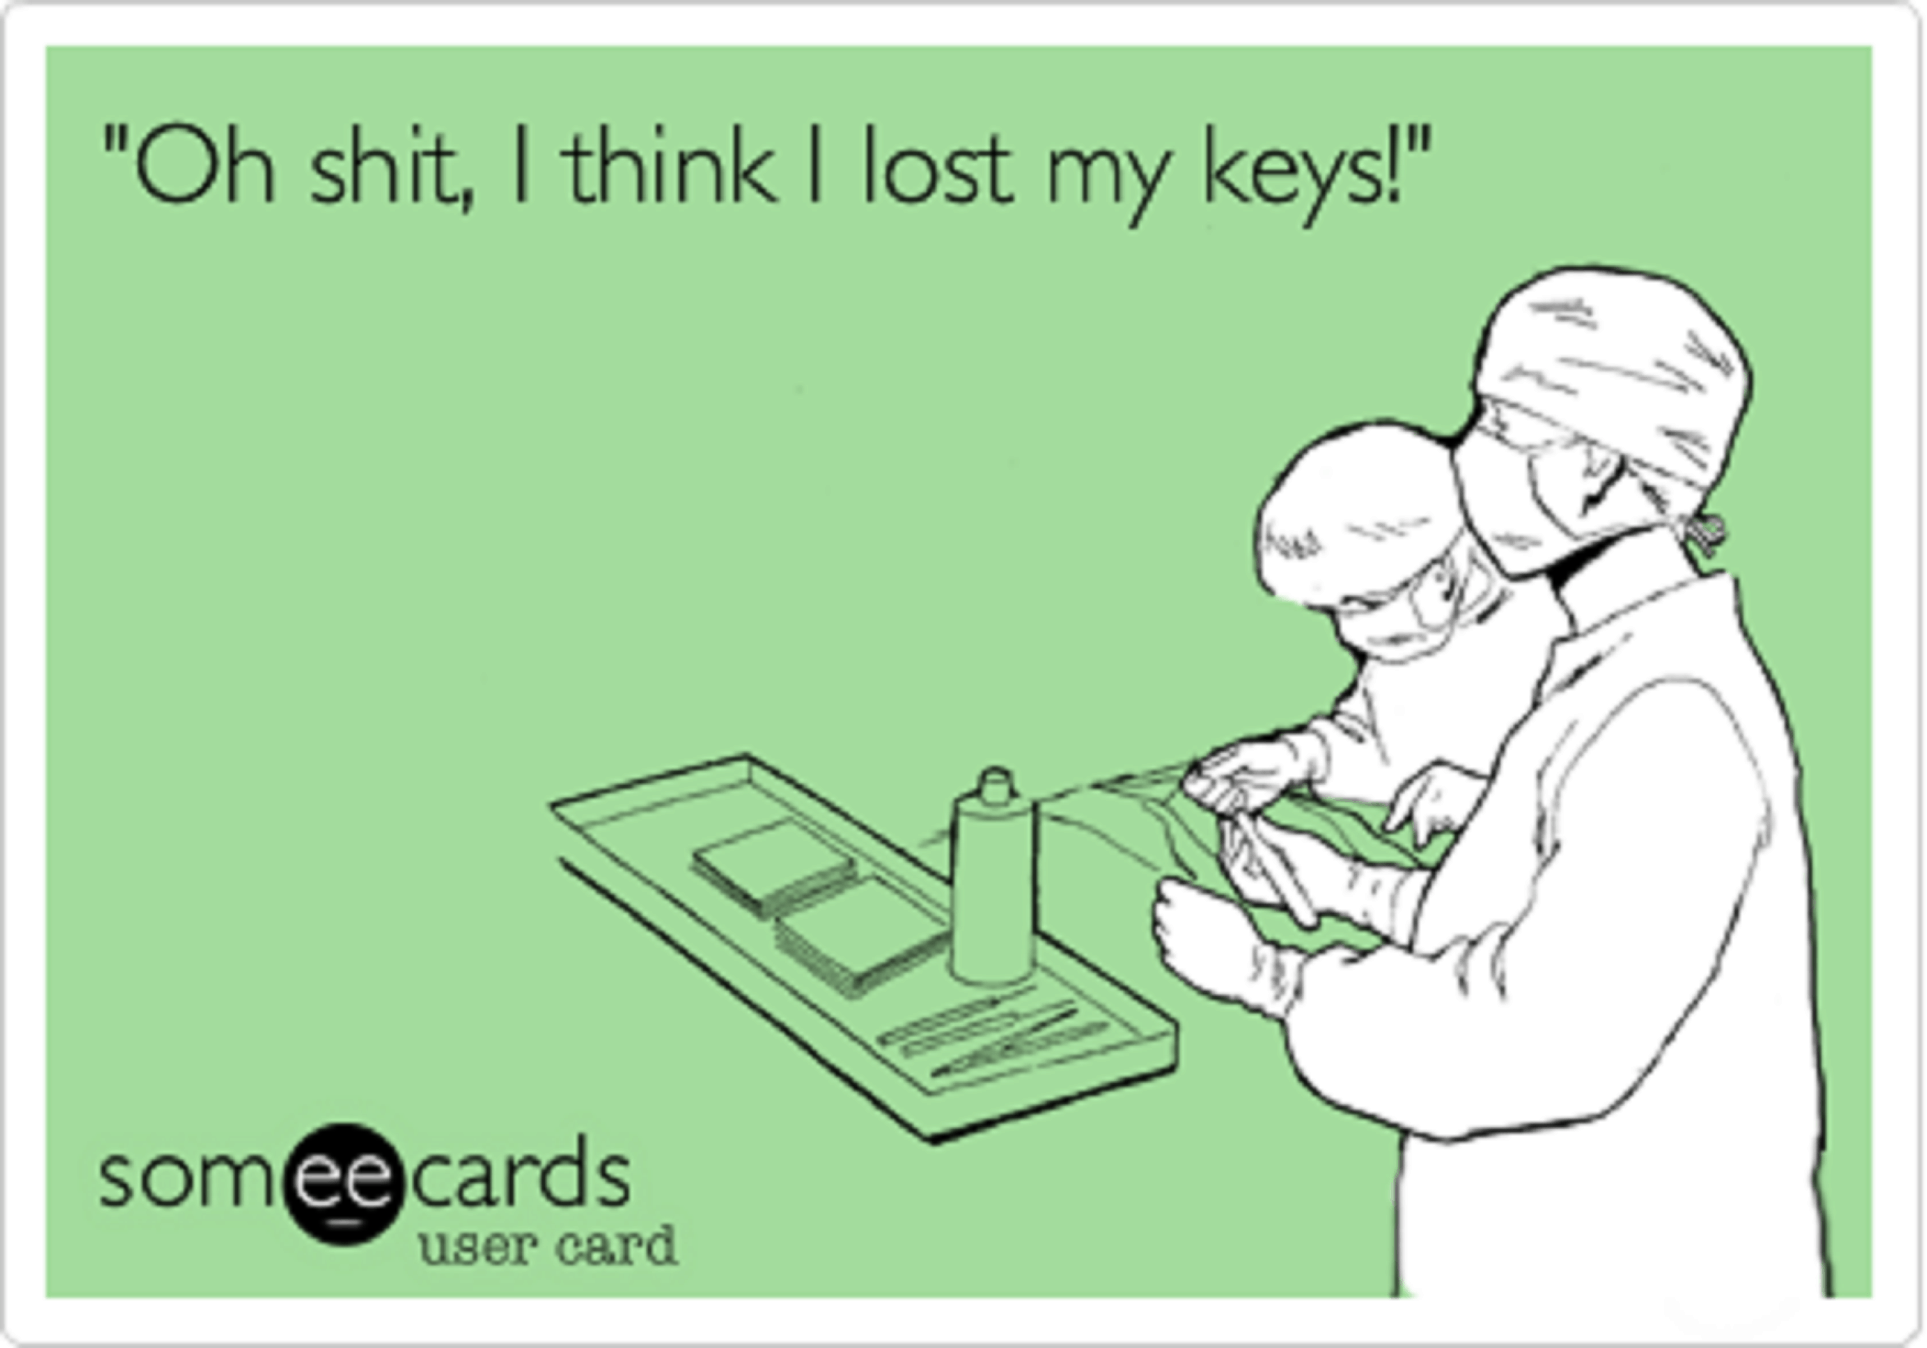 What if I lost my keys